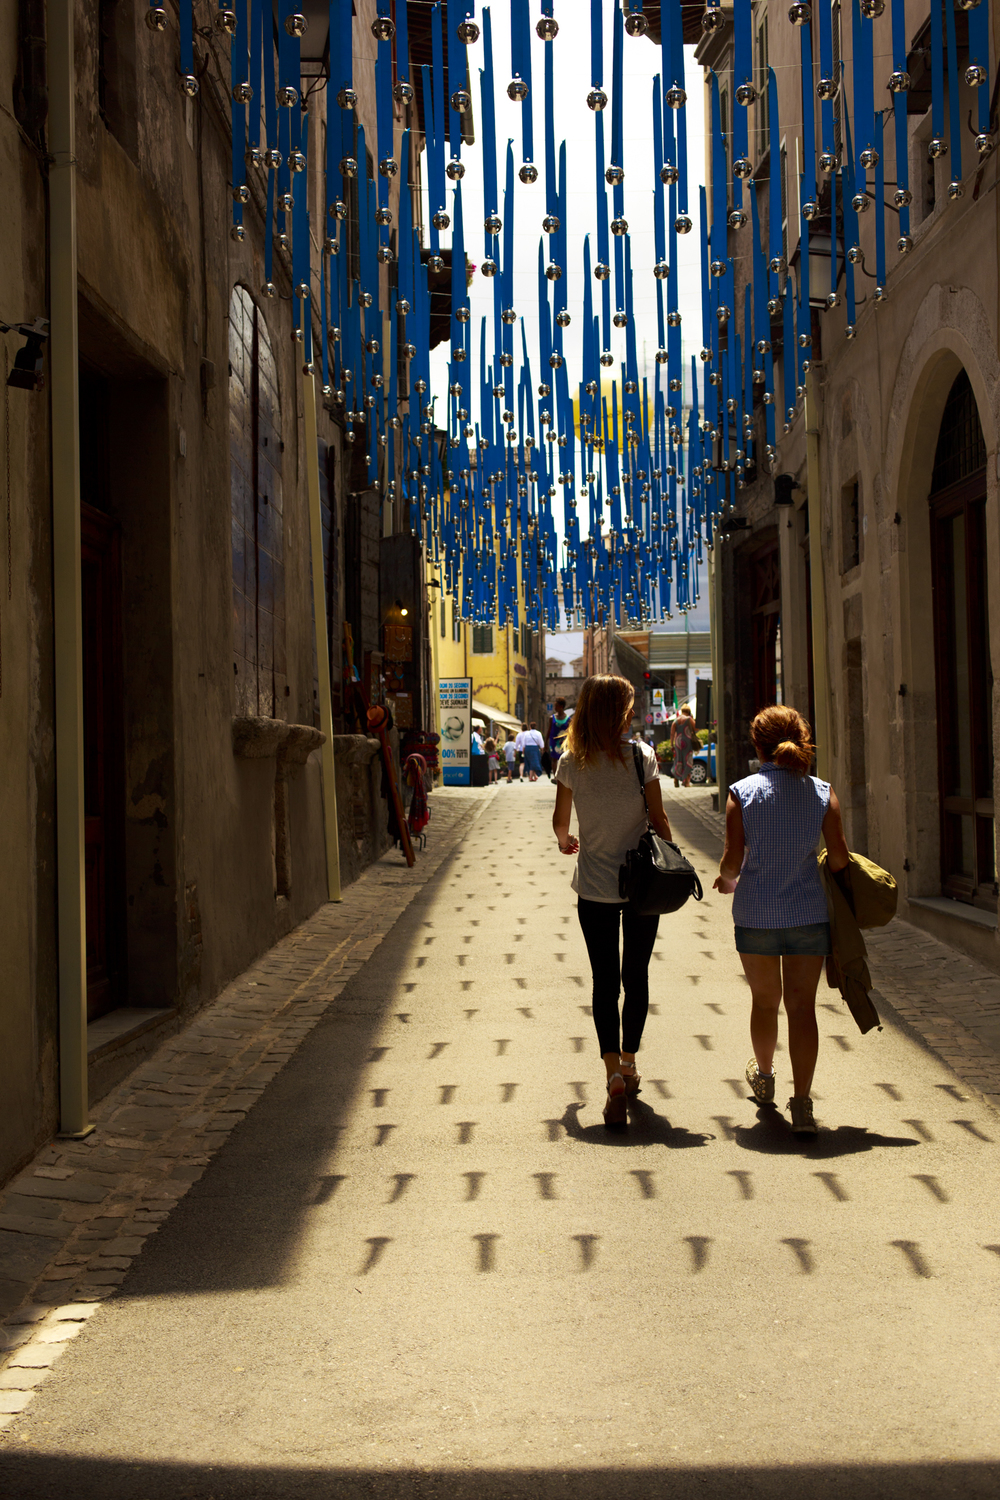 Spoleto Street with Bells